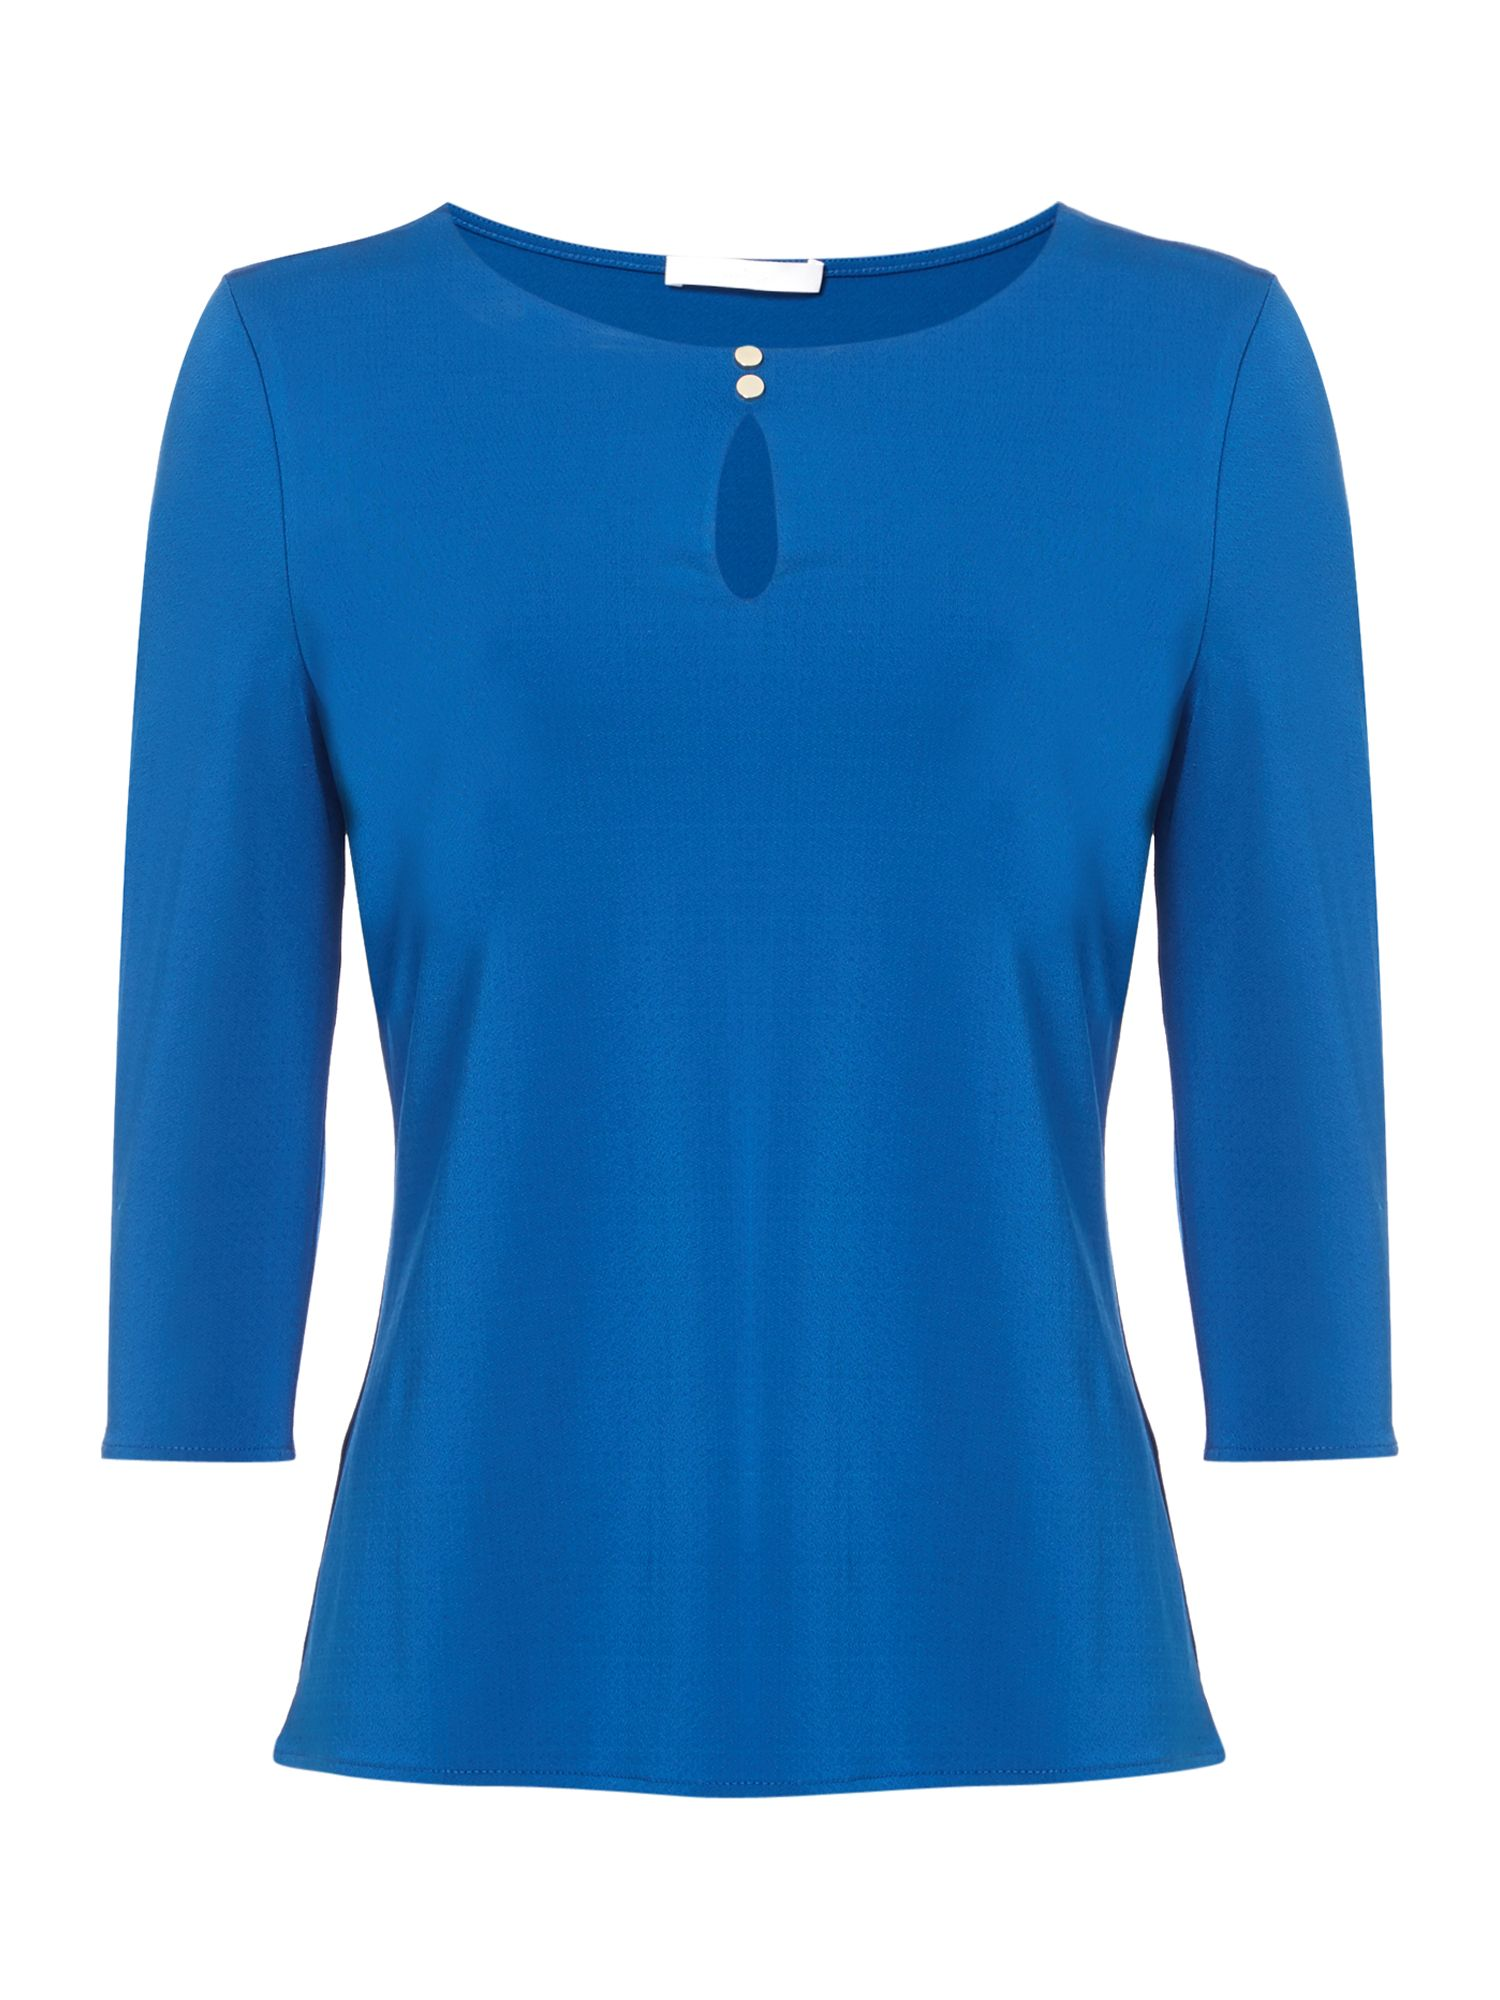 Hugo Boss Epina Jersey Longsleeve Top, Blue